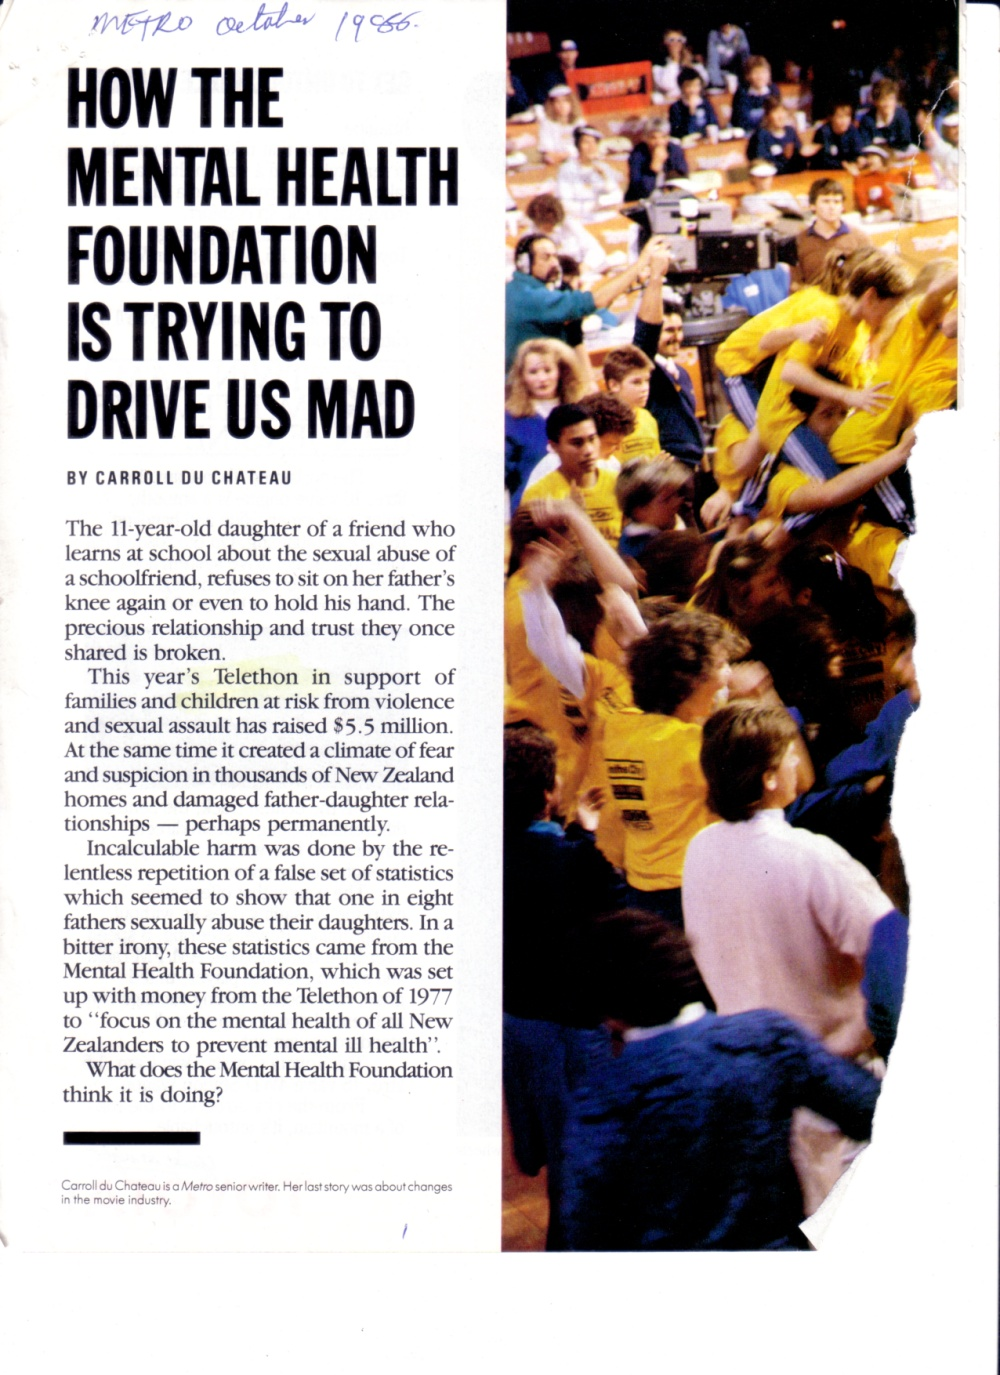 How the Mental Health Foundation is trying to drive us mad - Metro 0ct 1986 p01